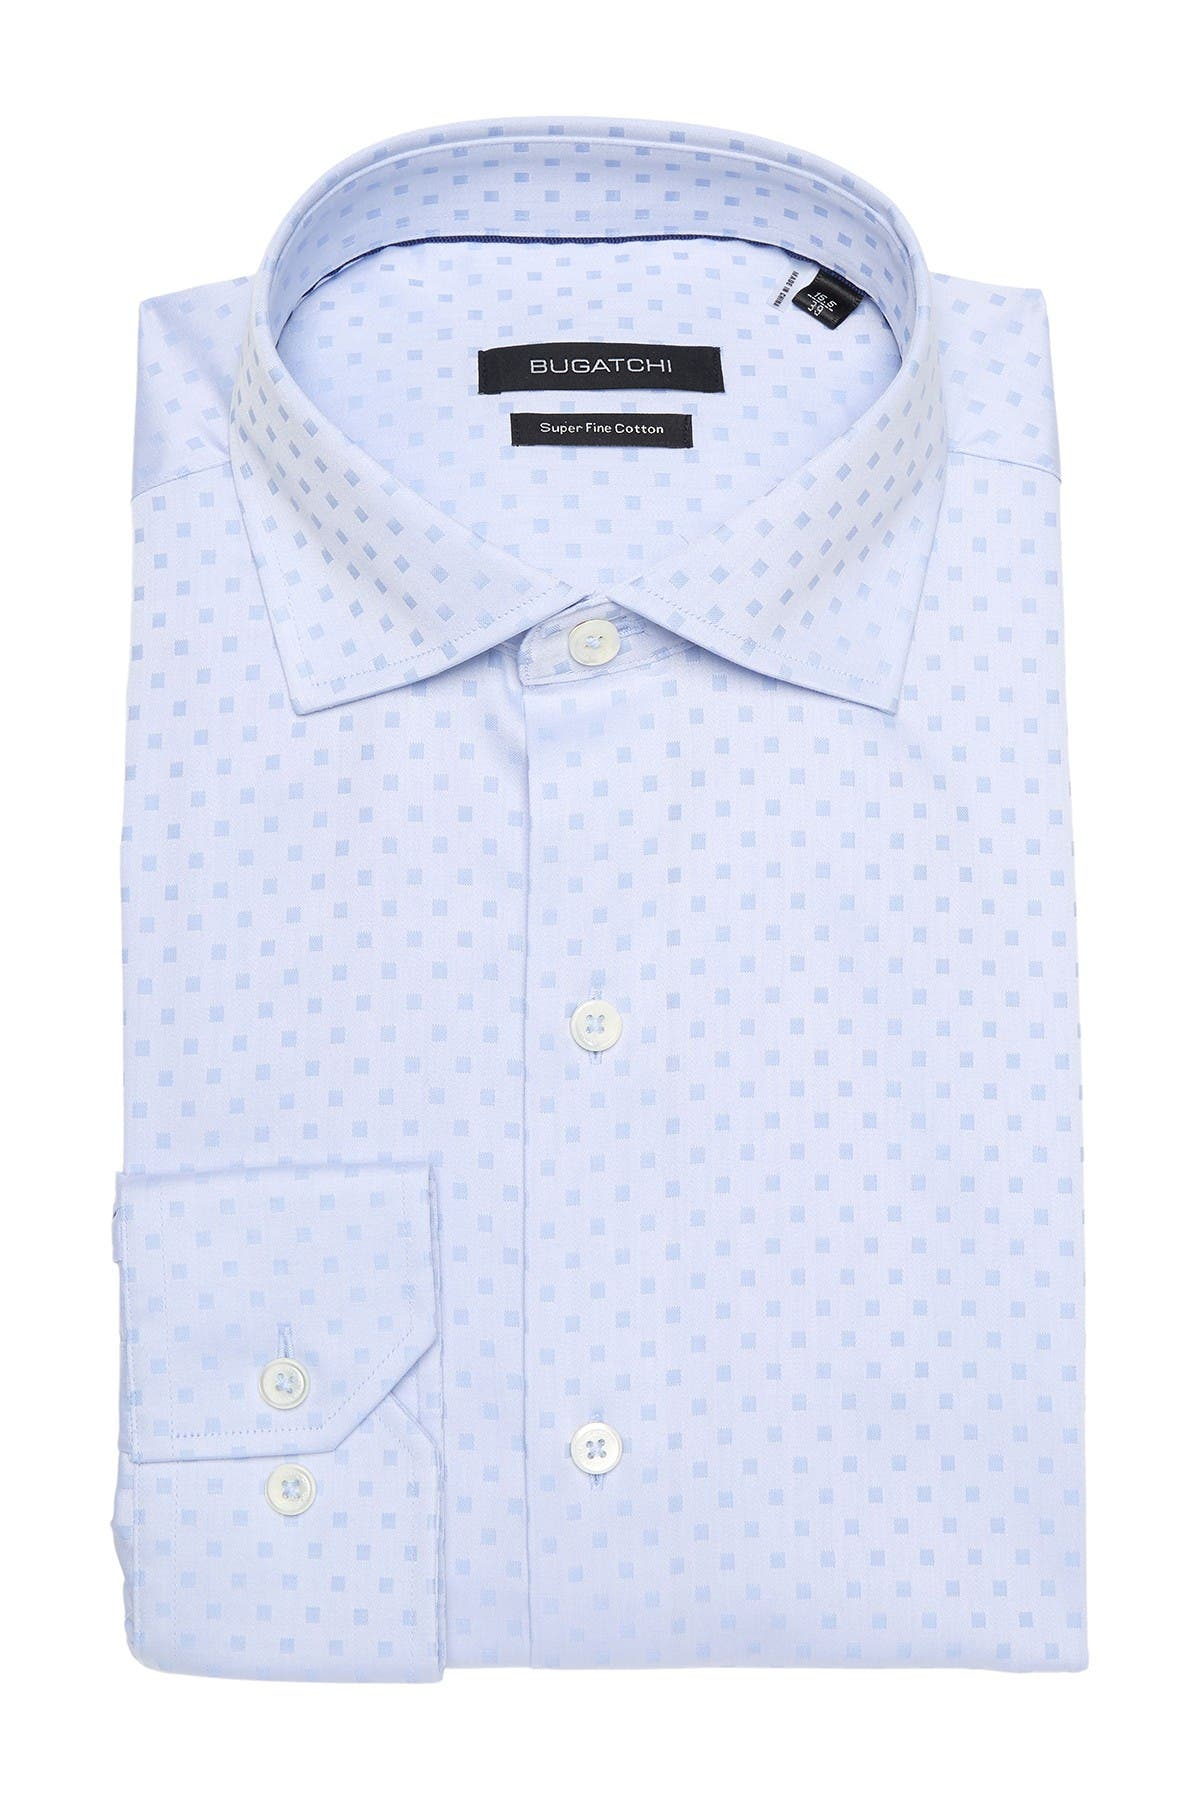 Image of Bugatchi Tonal Square Regular Fit Dress Shirt